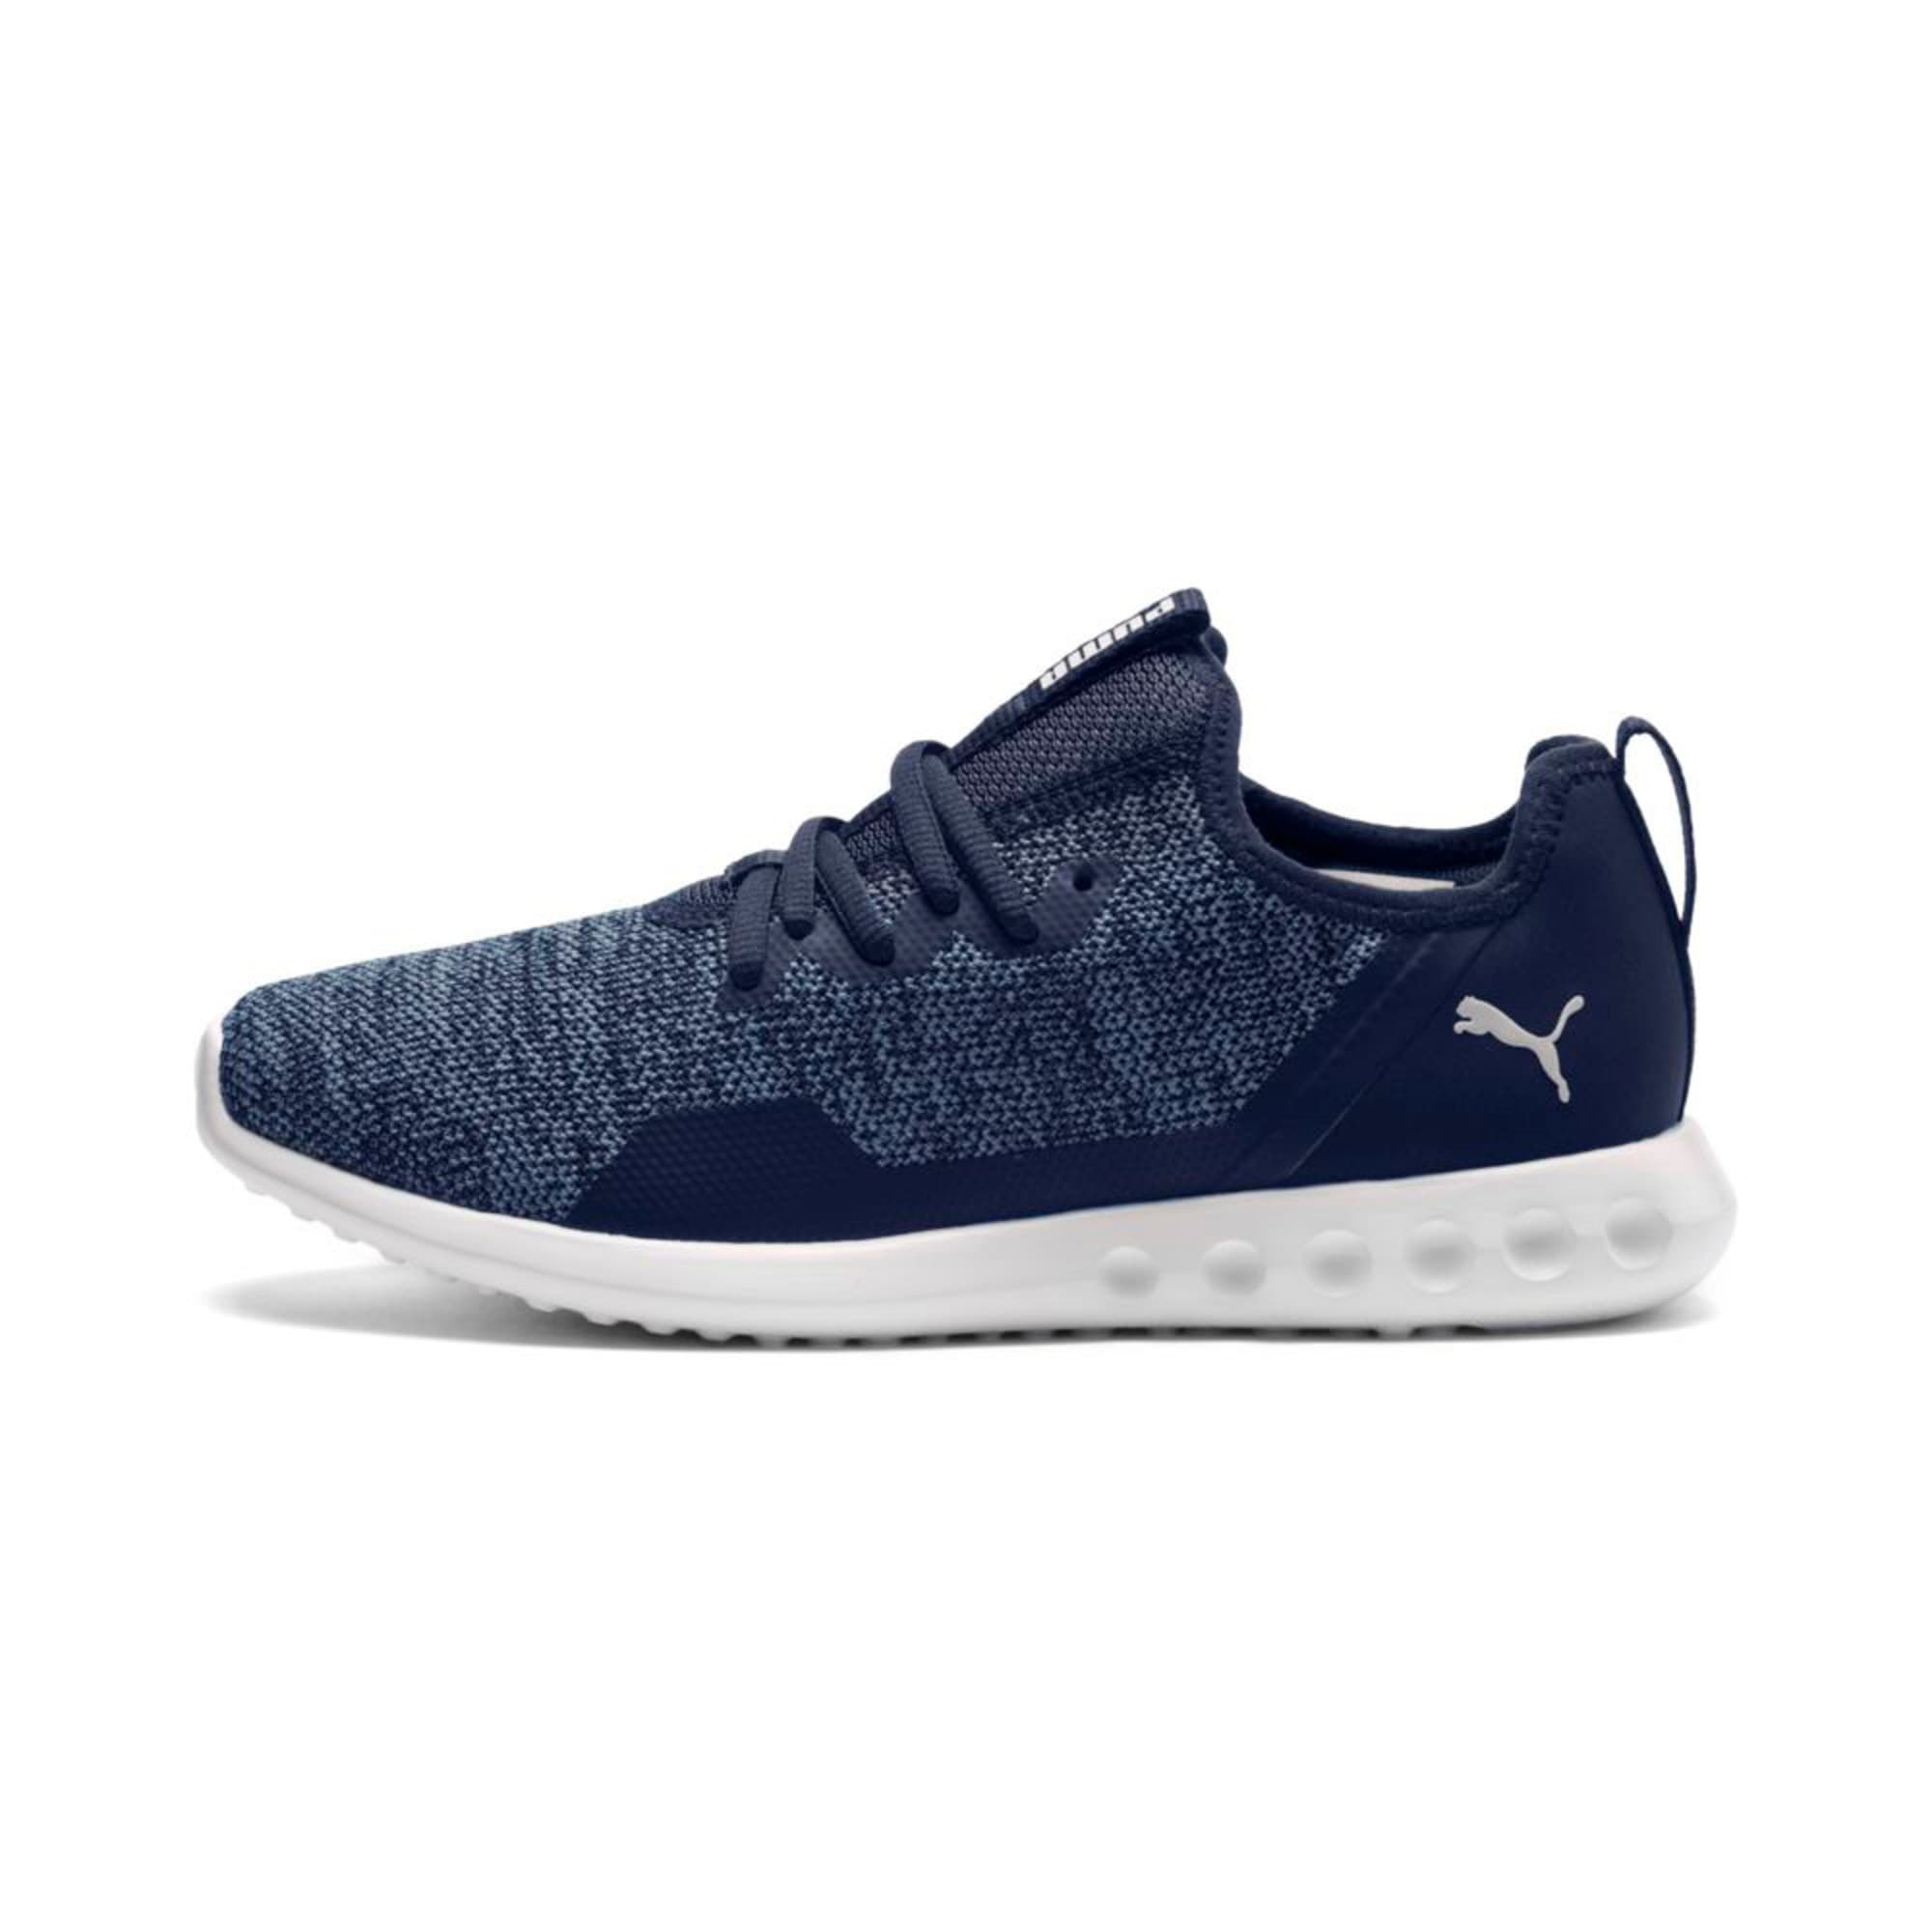 Thumbnail 1 of Carson 2 X Knit Women's Running Shoes, Peacoat-CERULEAN, medium-IND